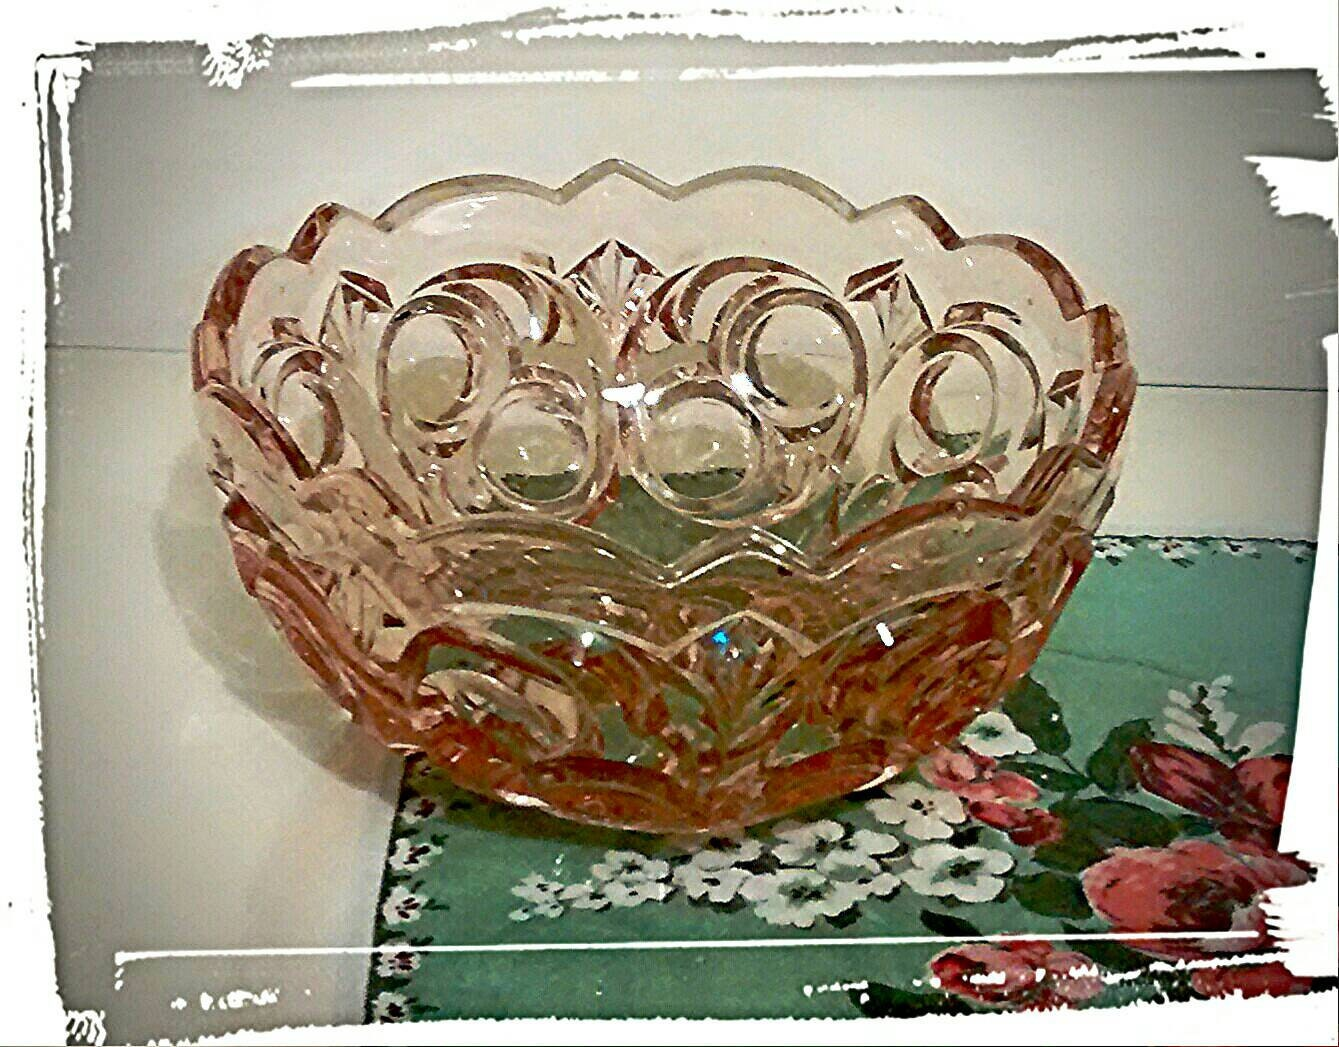 Large pink glass bowl art deco style wedding by VintageBigtime